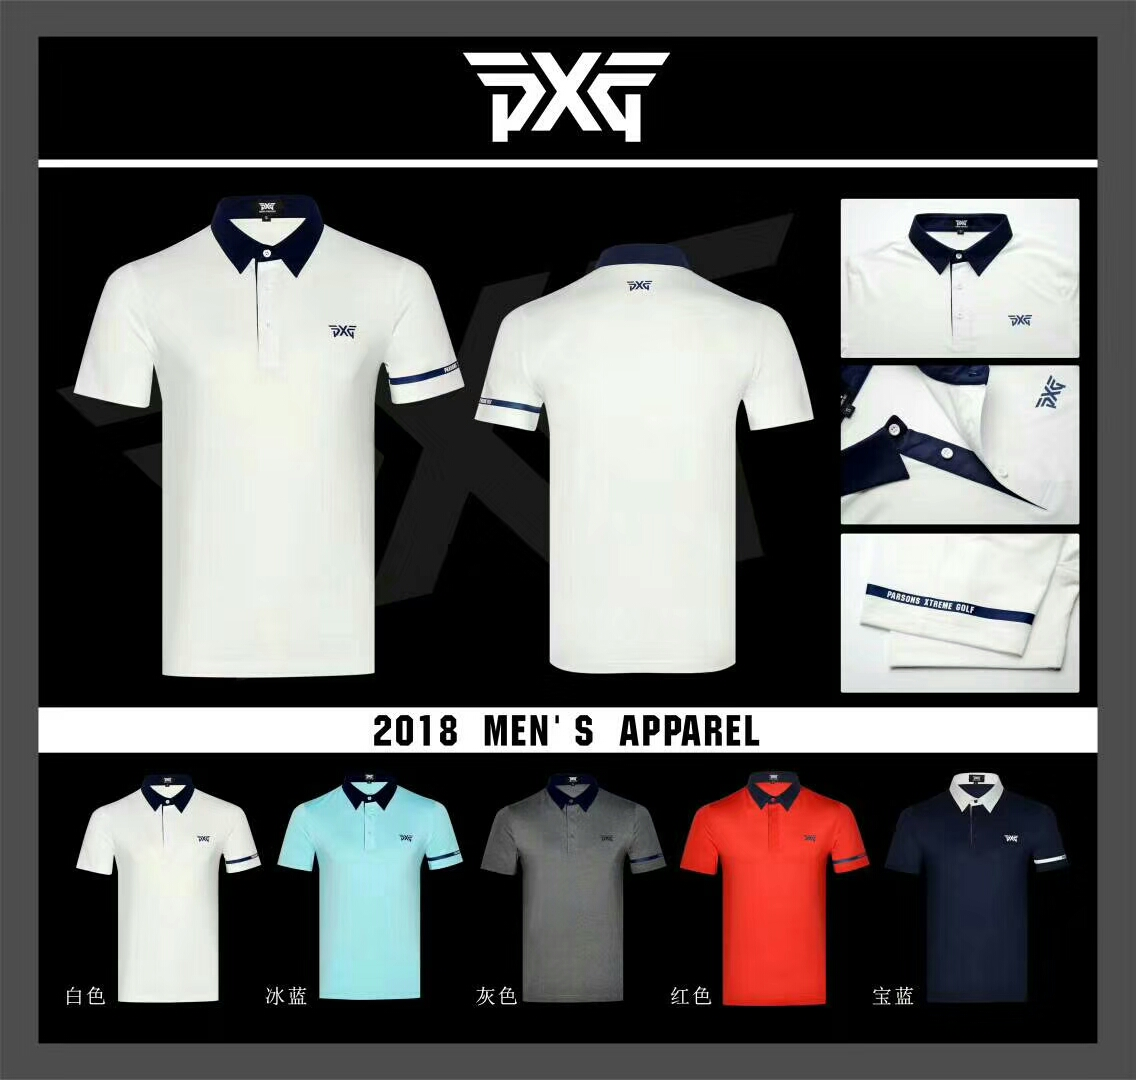 Golf clothes PXG T shirt Short sleeve mens Sportswear Short sleeve 5 colors S-XXL Outdoor leisure Golf shirt 2018 NEW new cooyute golf windbreaker v mens golf jackets long sleeve male golf clothing black colors xxl size golf